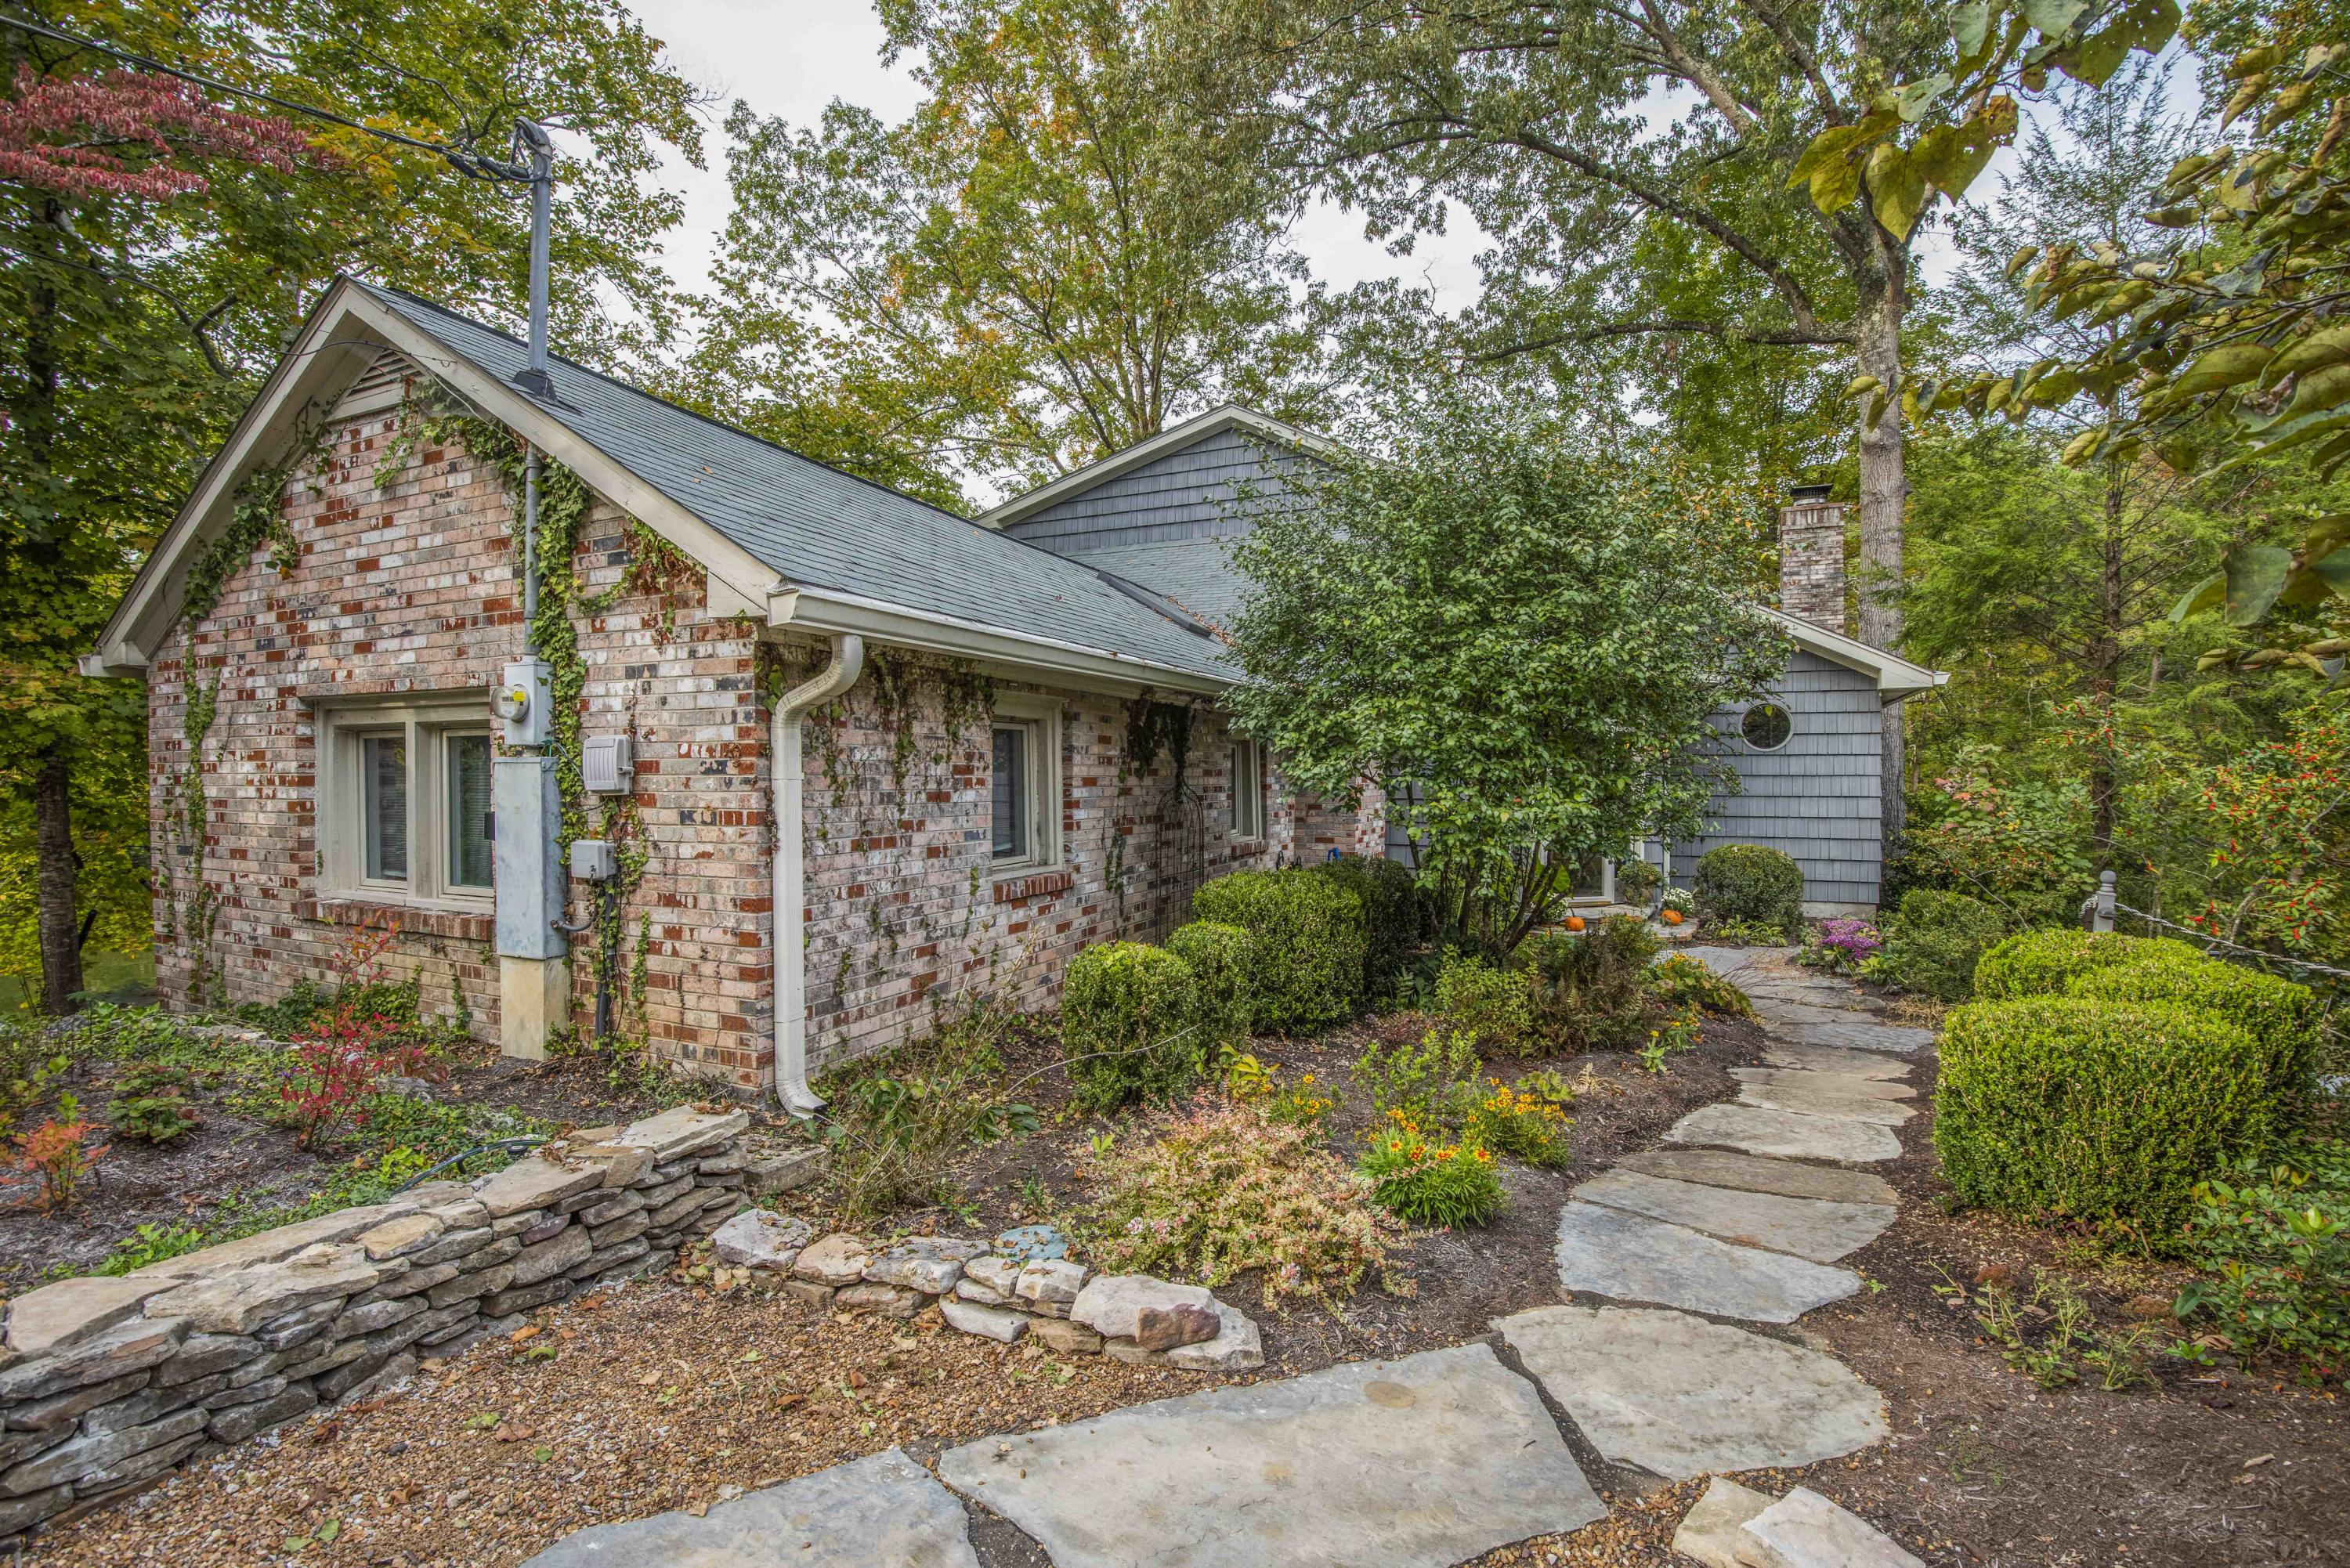 1640 Old Topside Rd: